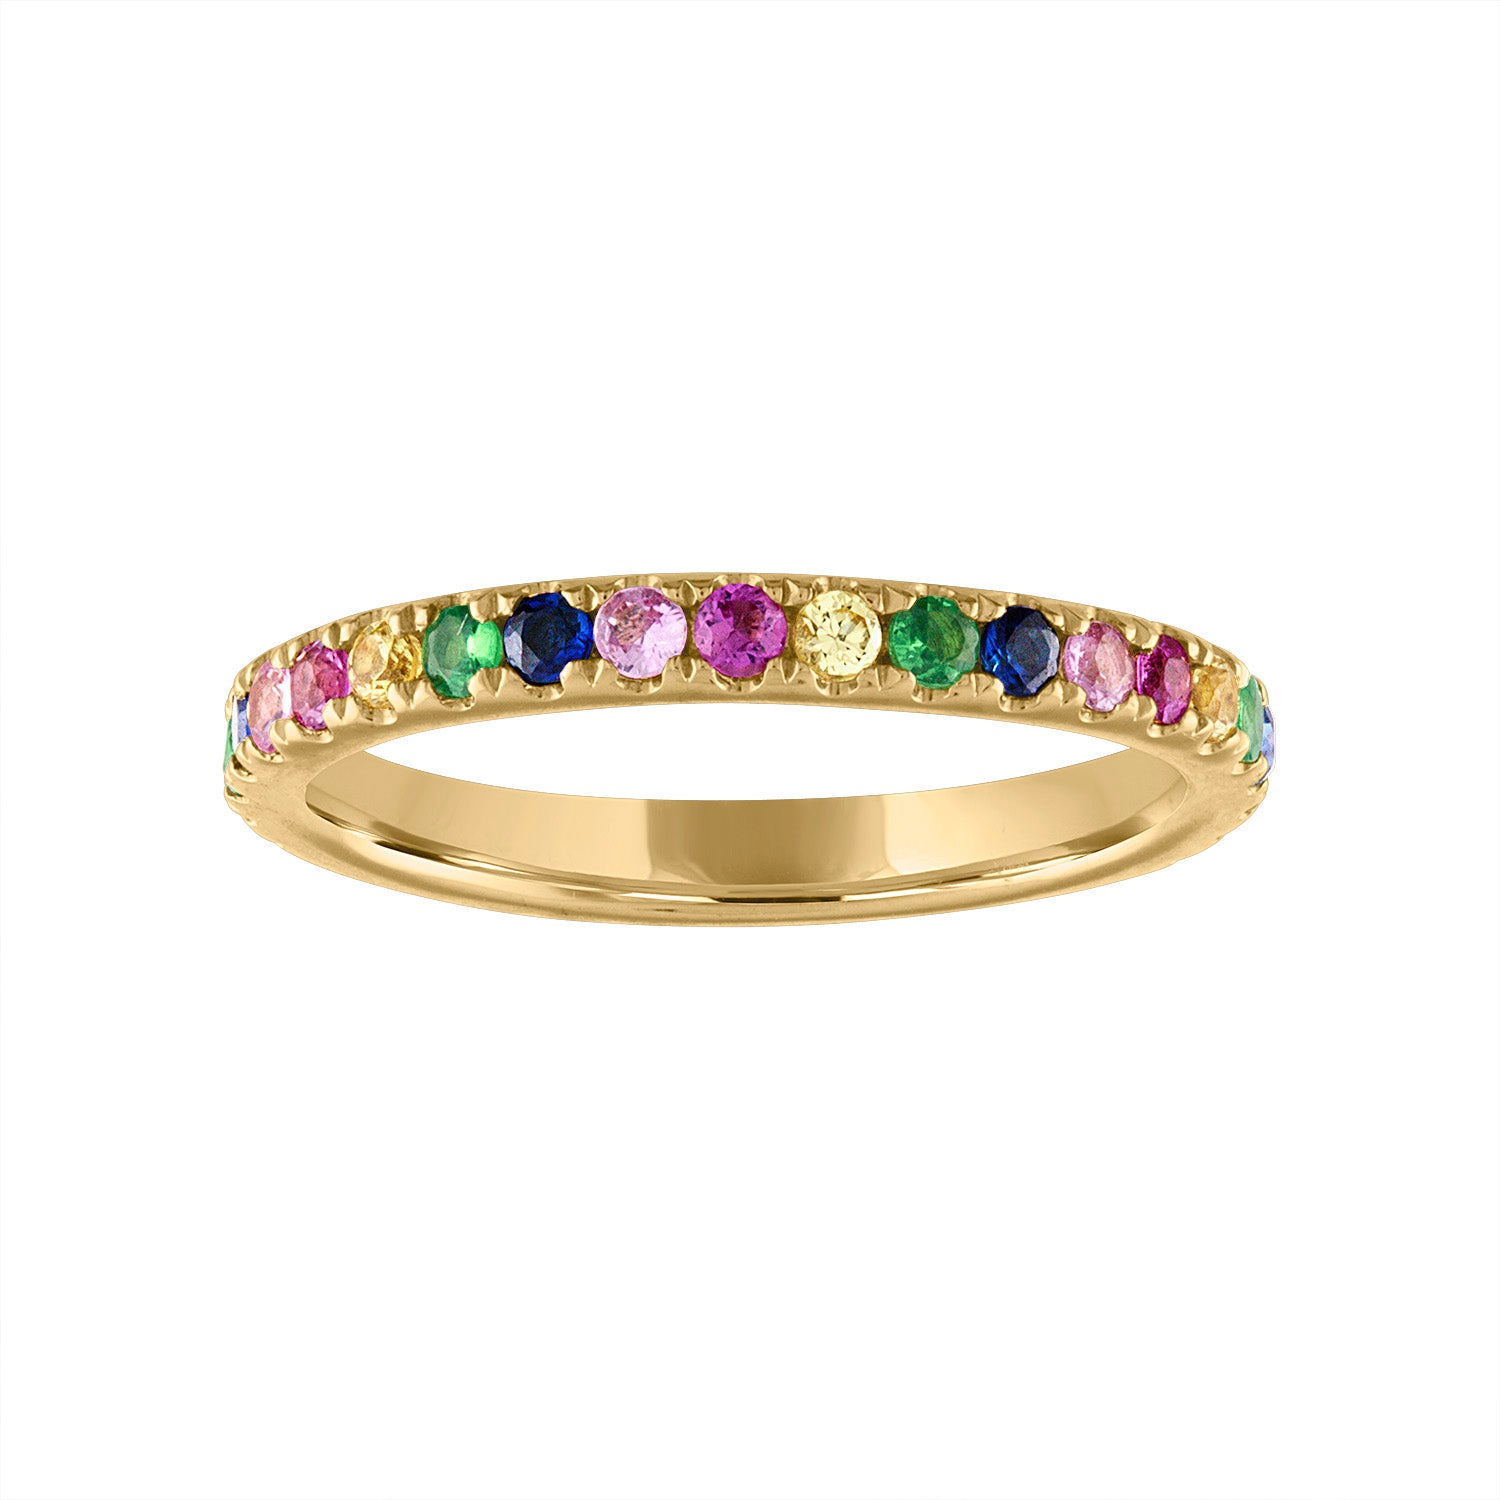 14KT GOLD MULTI-COLOR SAPPHIRE RING GUARD